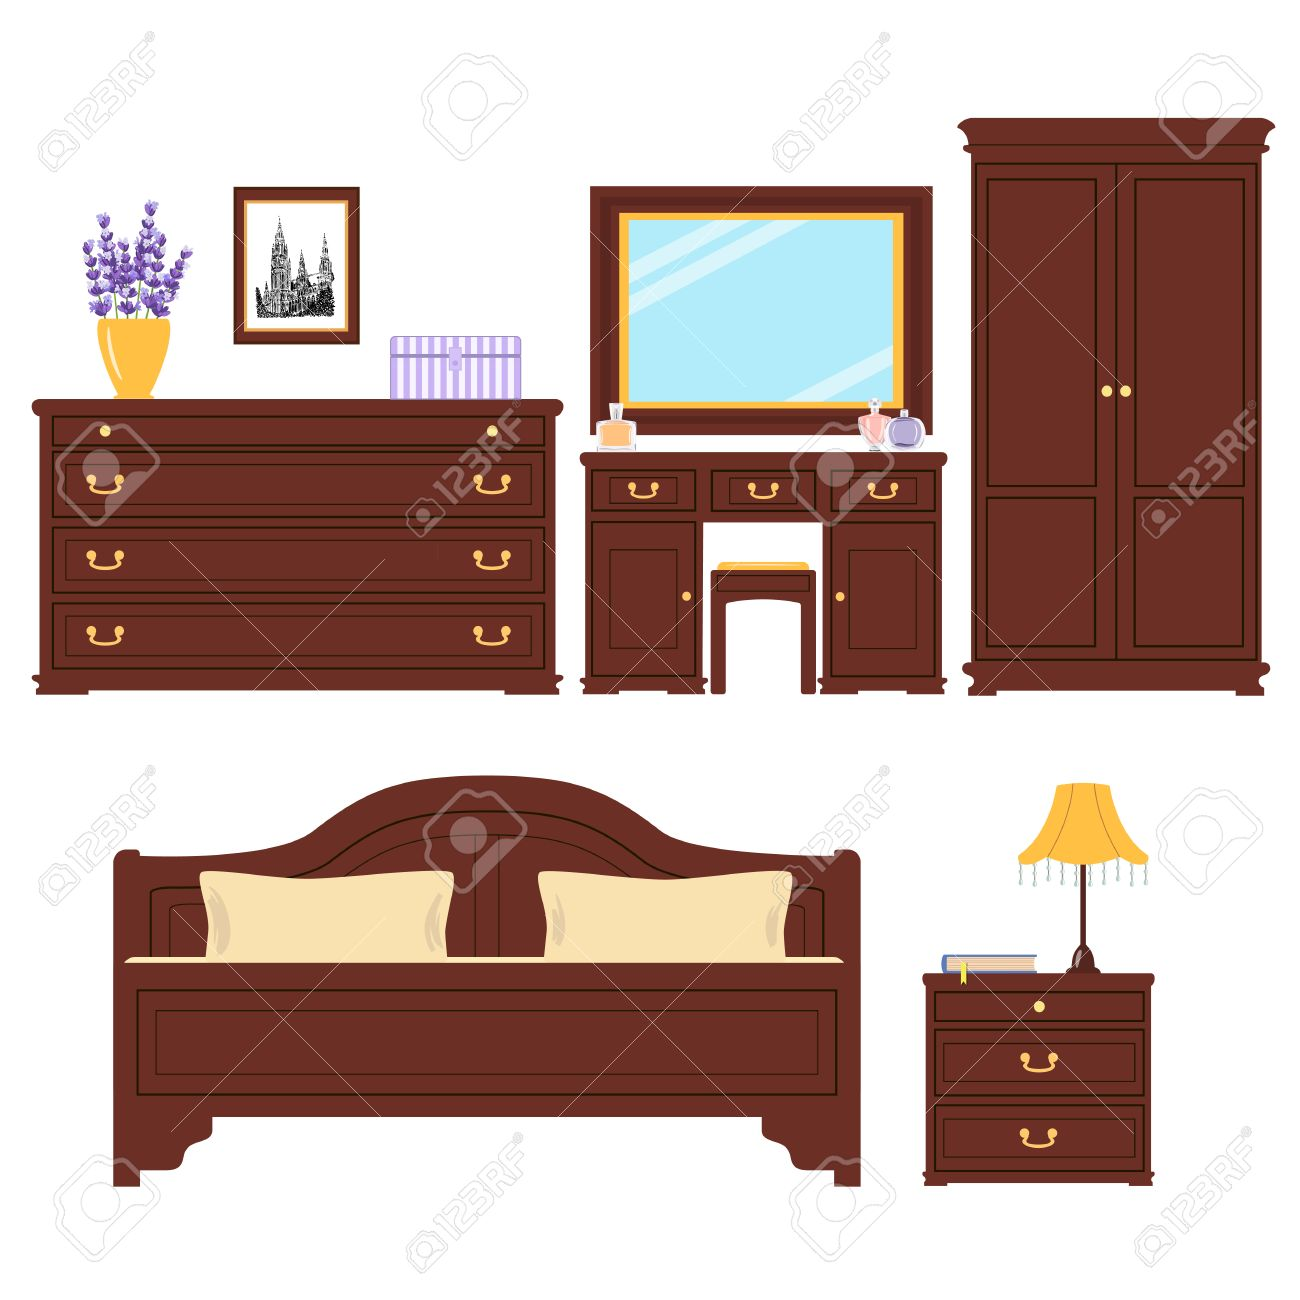 Set Of Furniture For Bedroom. Cute Sleeping Room. For Advertising, Real  Estate Image